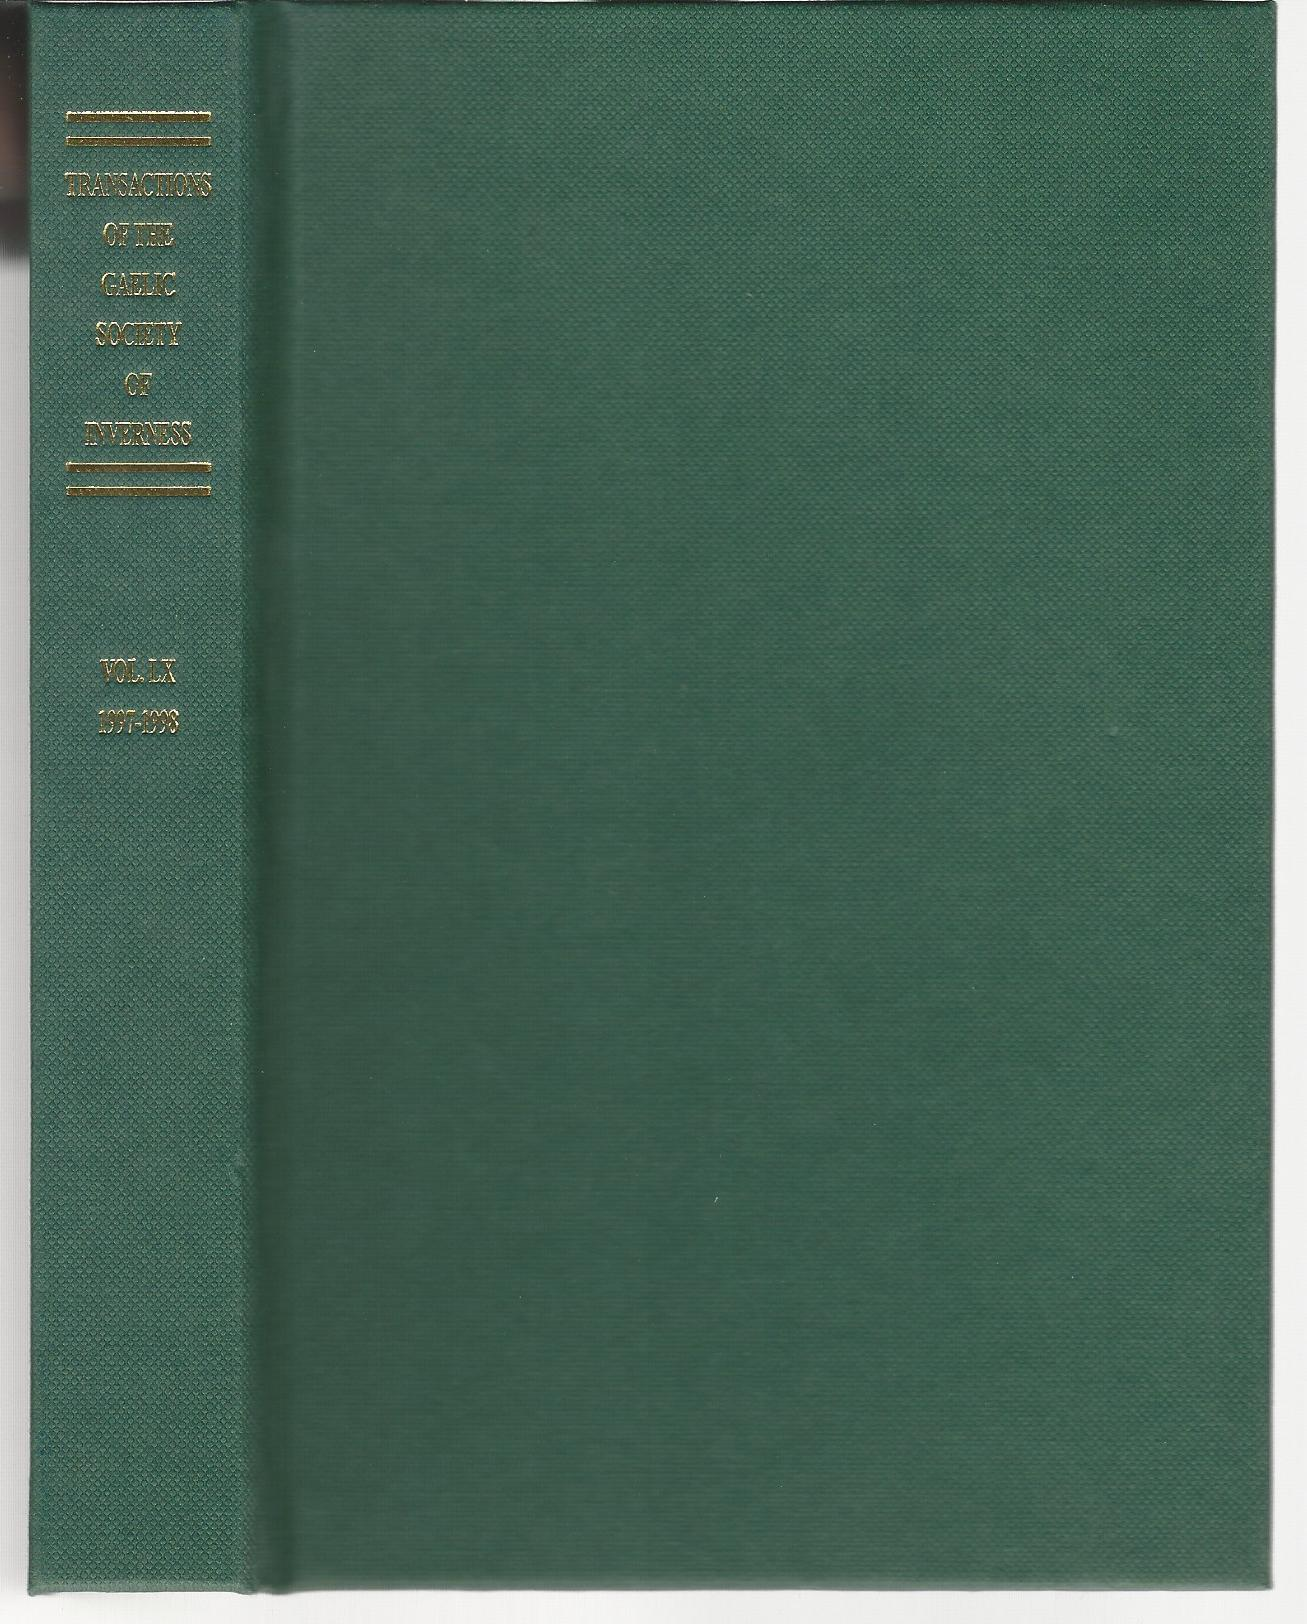 Image for Transactions of the Gaelic Society of Inverness: Volume LX 1997-1998